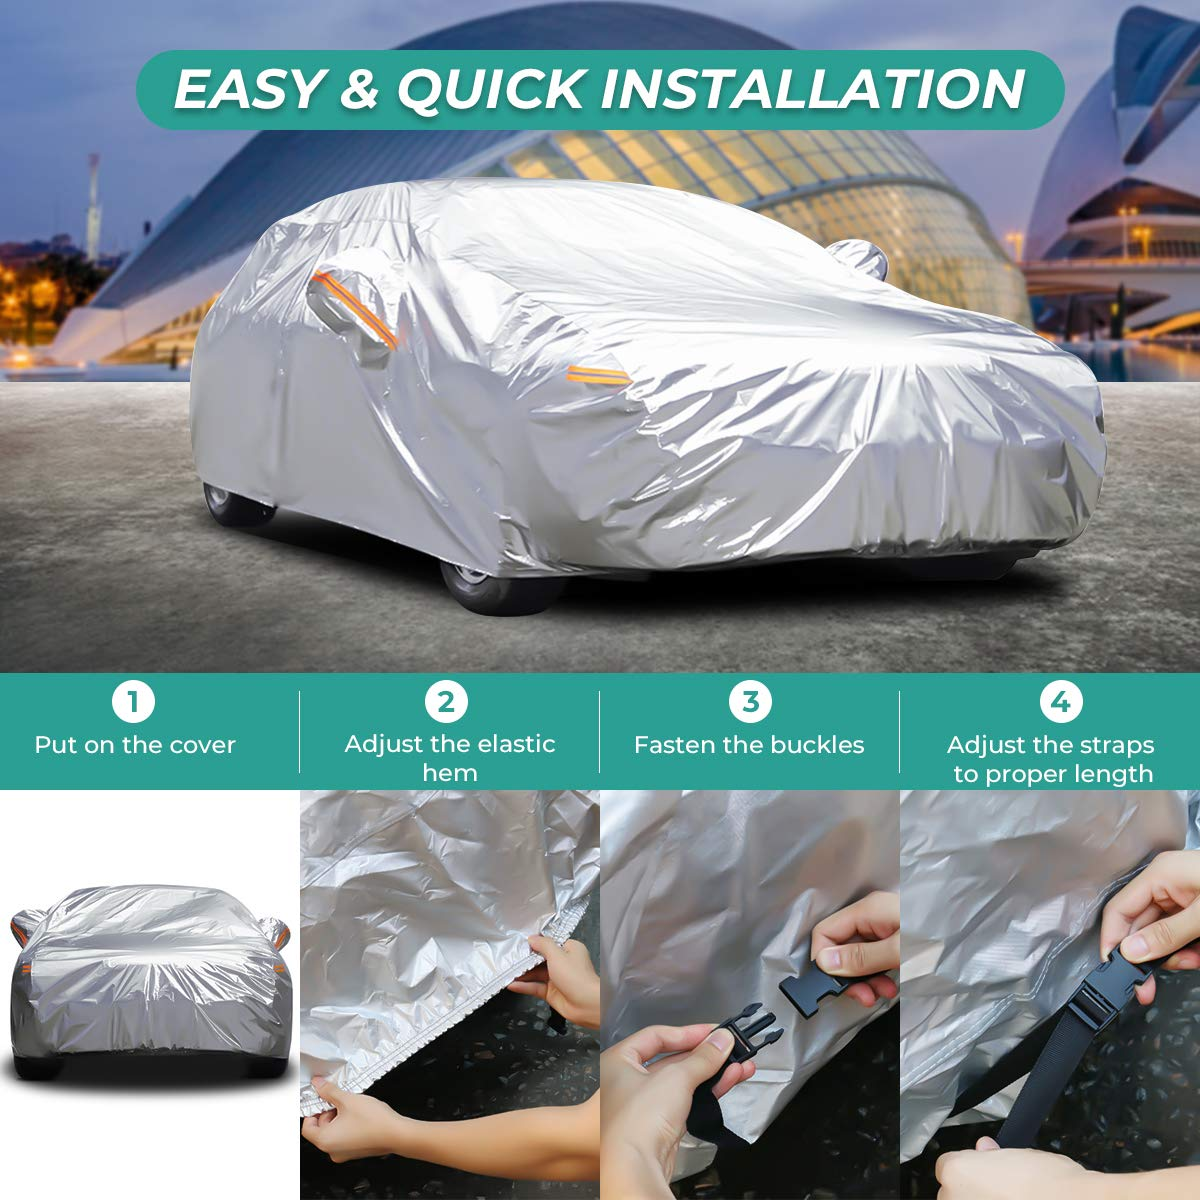 187L*76W*56H inch for Sedan Audew Full Car Cover Snow Cover 6 Layer Breathable Sun Shade Protector Waterproof Car Cover Windproof Silver White YL